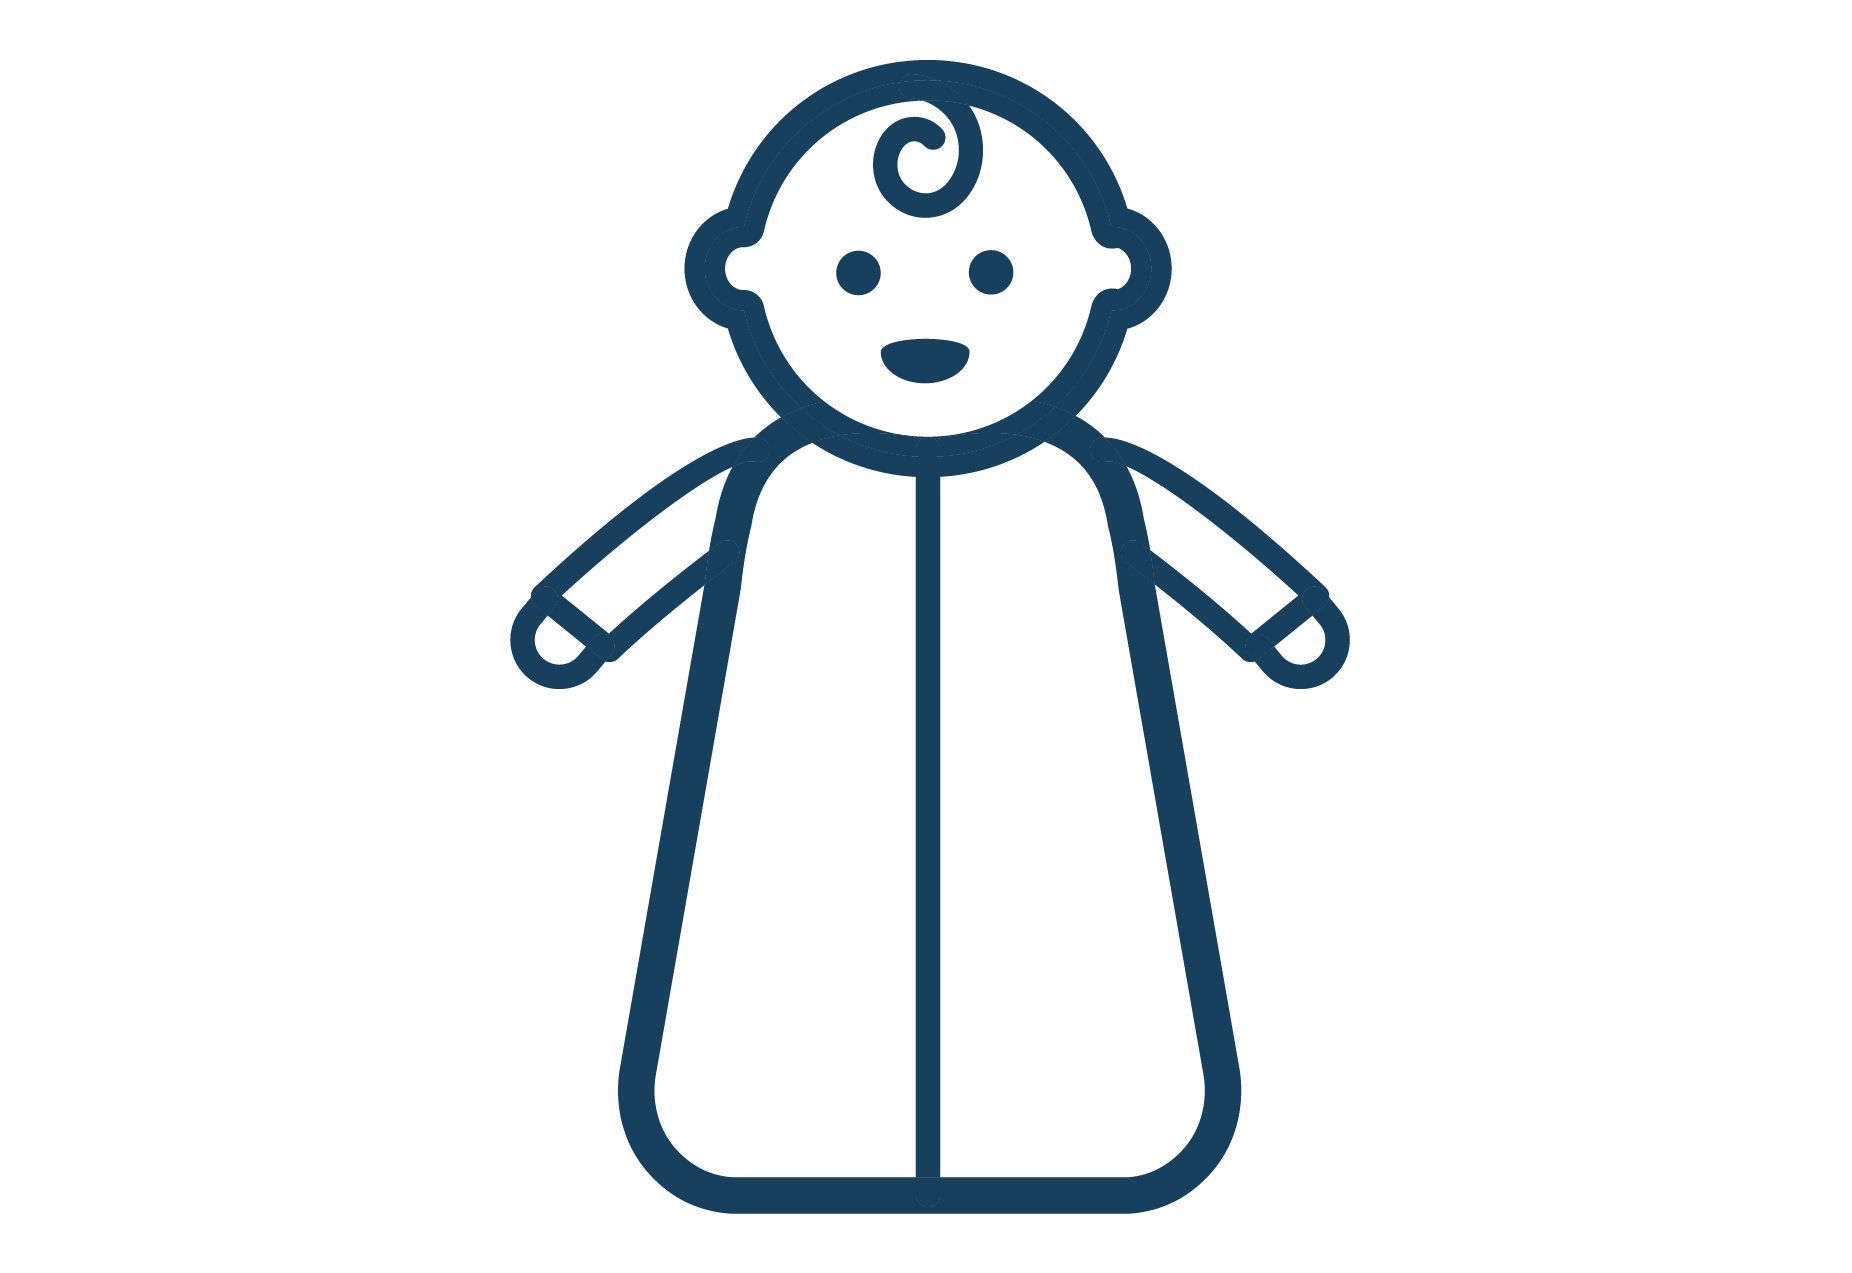 baby in wearable blanket icon